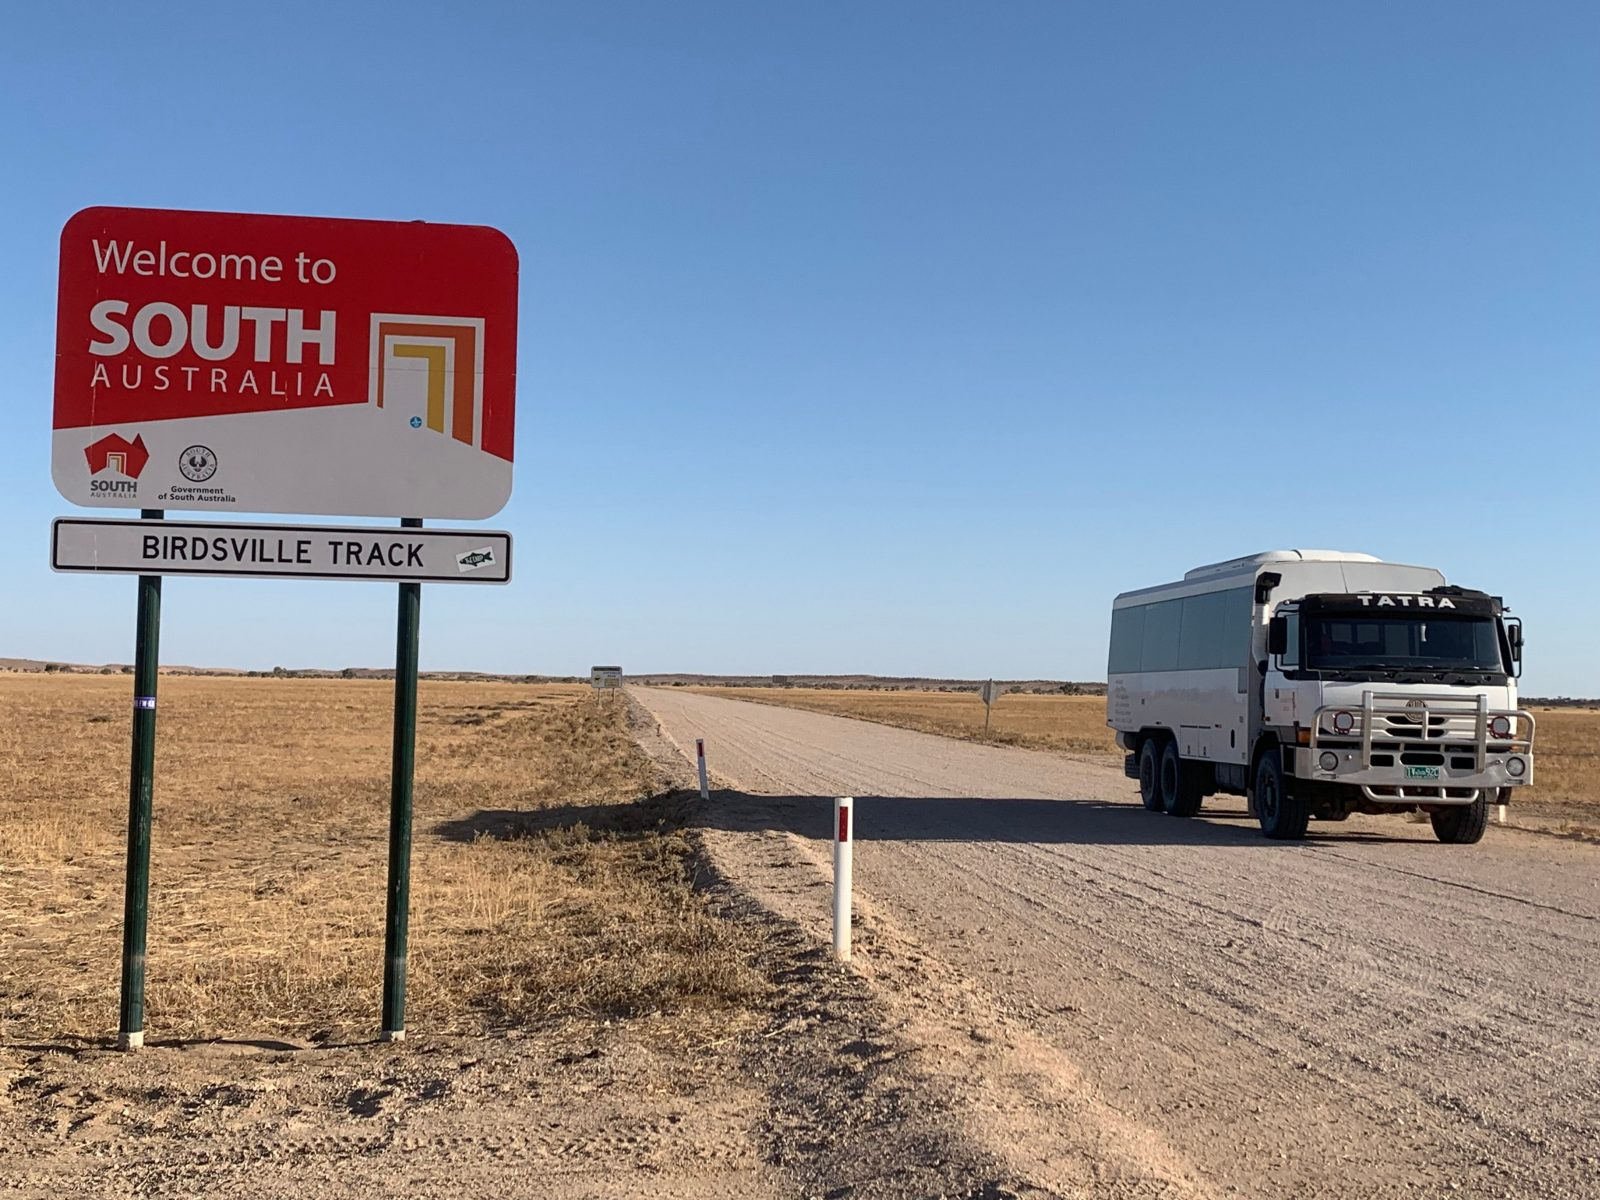 6WD coach driving on the dirt Birdsville Track